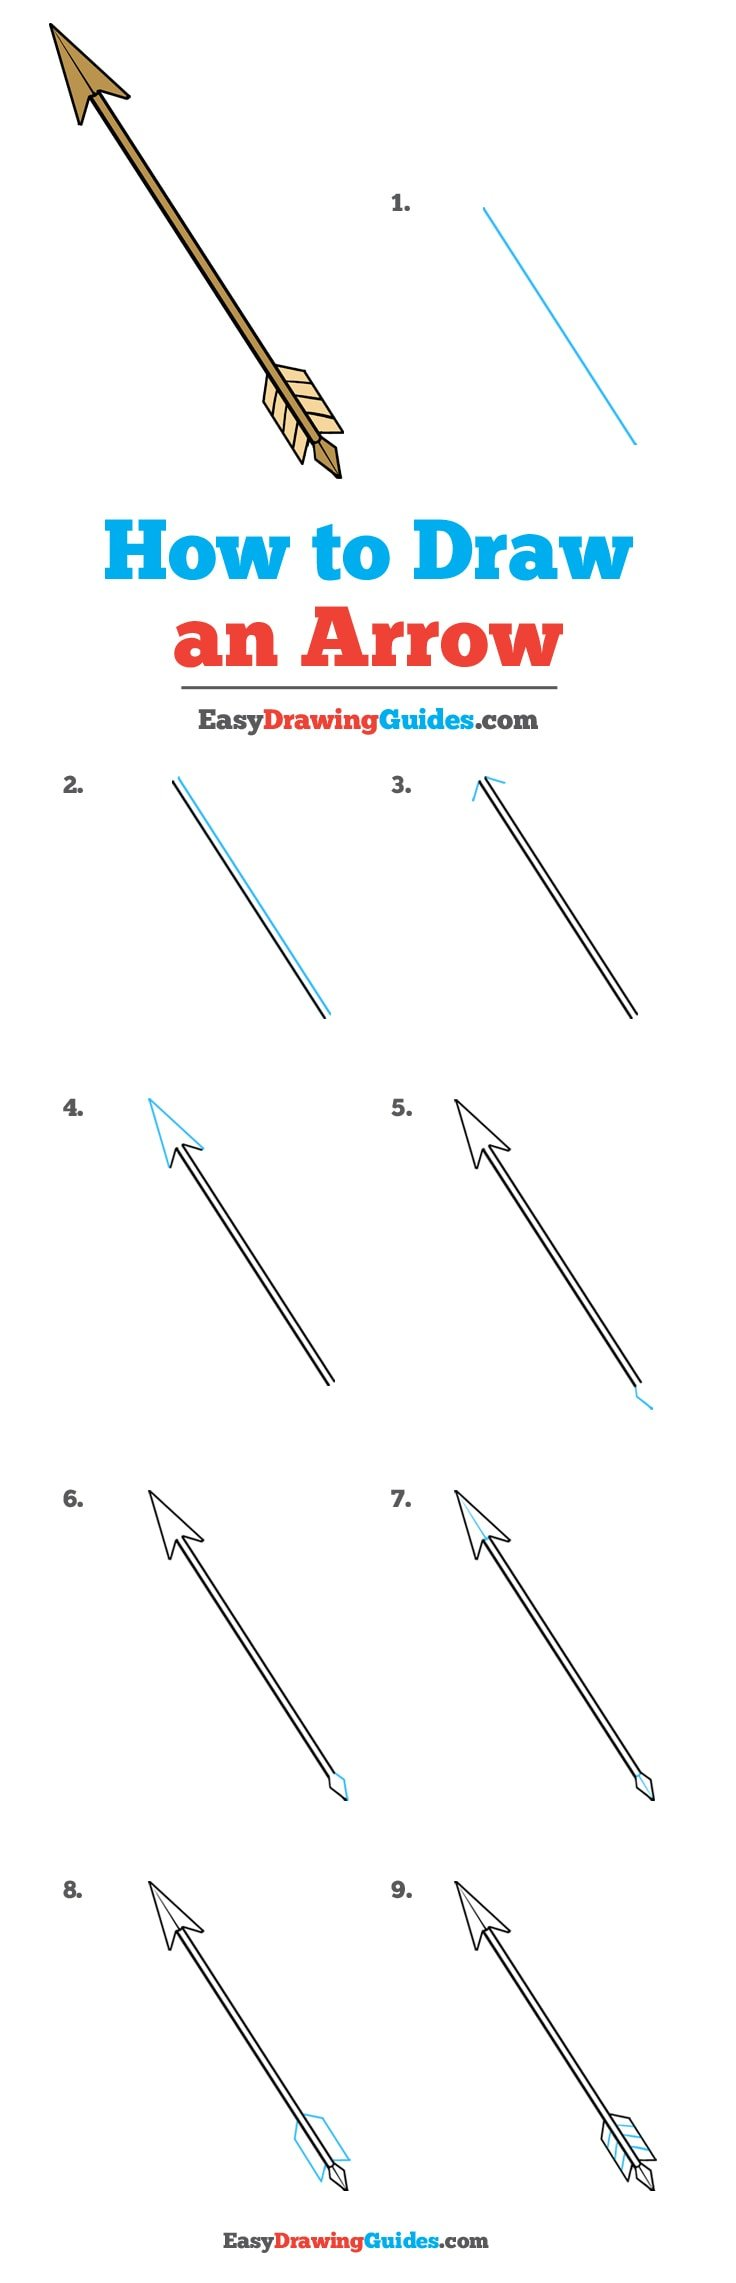 How to Draw Arrow